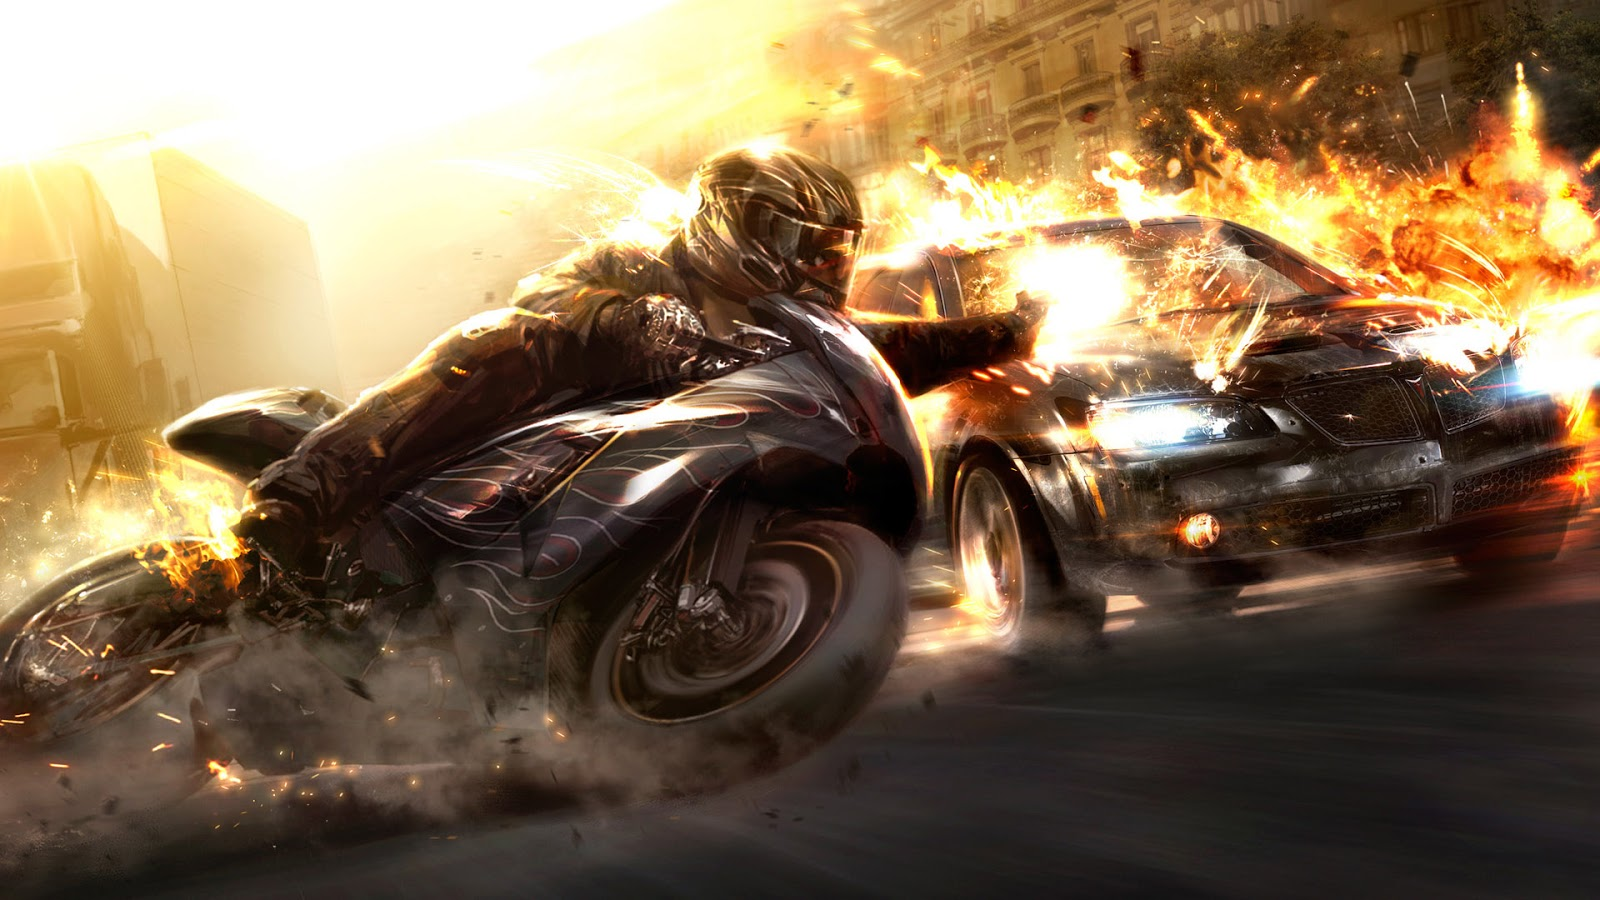 Car Slide HD Game Background Image hd wallpapers